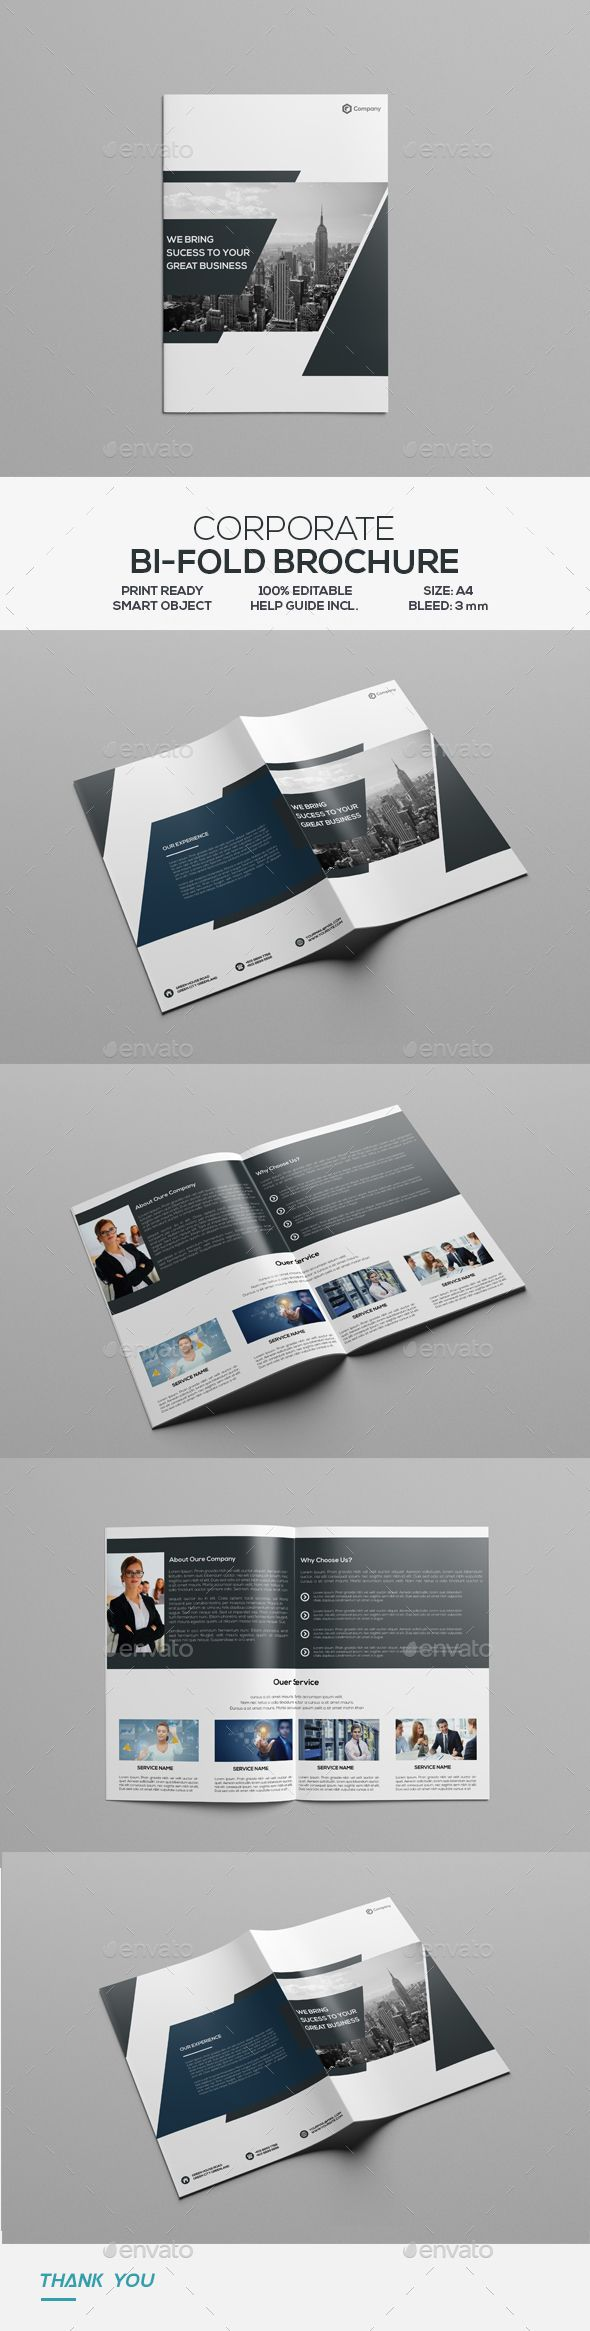 Corporate Bifold Brochure - Corporate Brochures Download here : https://graphicriver.net/item/corporate-bifold-brochure/19464209?s_rank=47&ref=Al-fatih